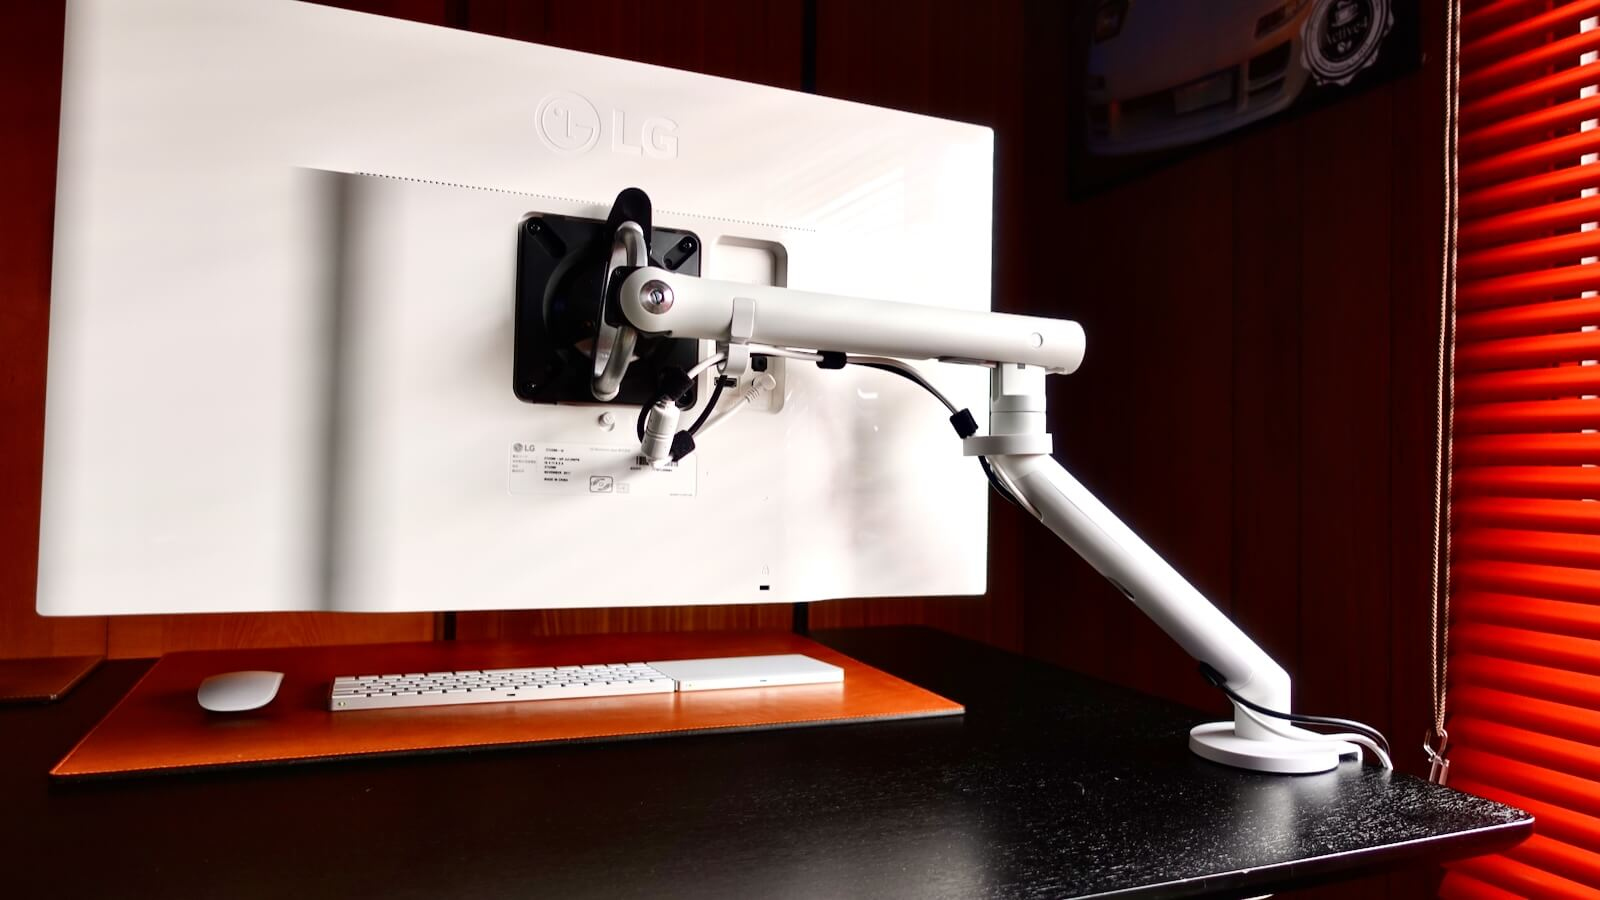 Herman Miller Flo monitor arm installed at the left end of the arm table